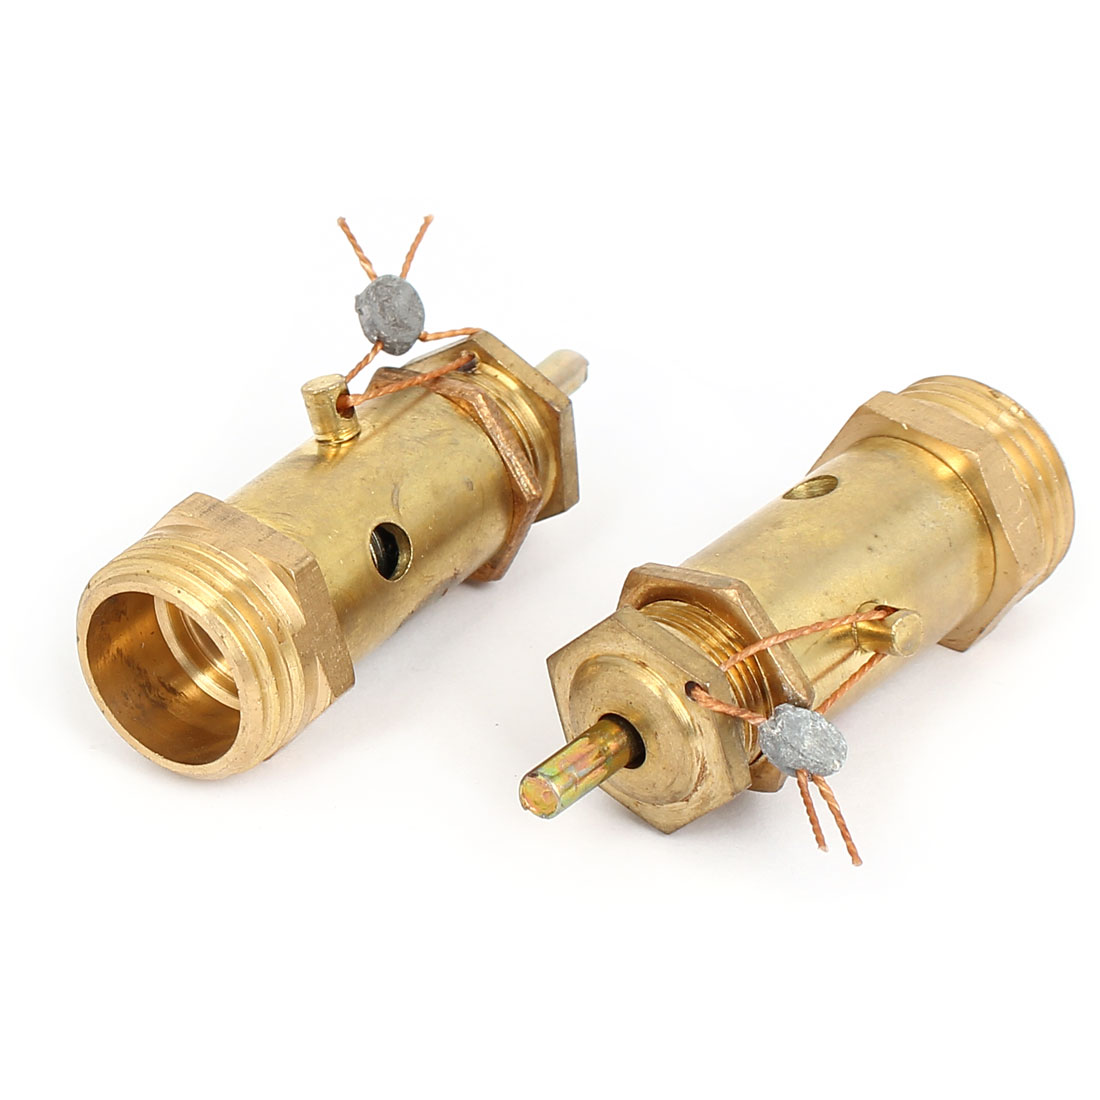 21mm Male Thread Air Compressor Safety Relief Pressure Valve Gold Tone 2Pcs